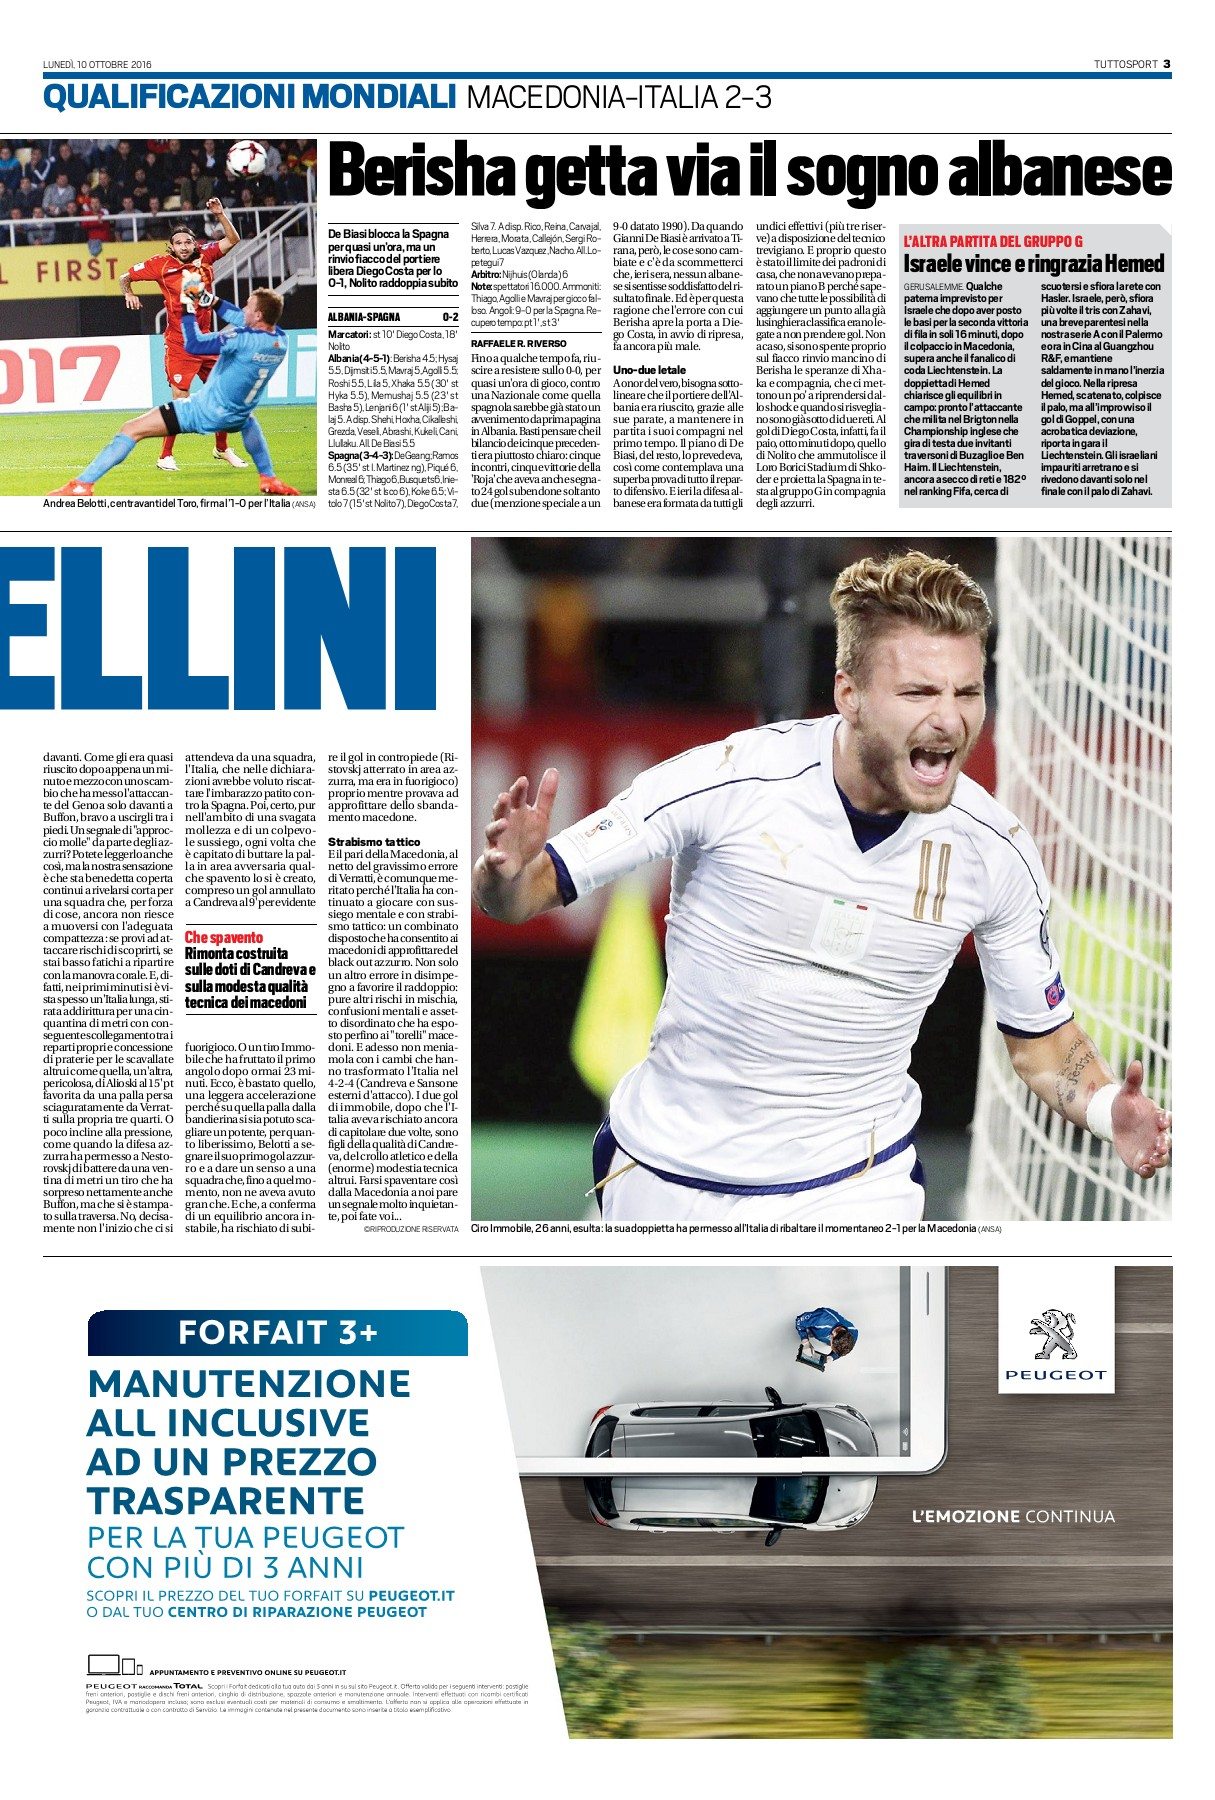 TuttoSport - 10 Ottobre 2016 Pages 1 - 28 - Text Version  6b2d92ebf9b4